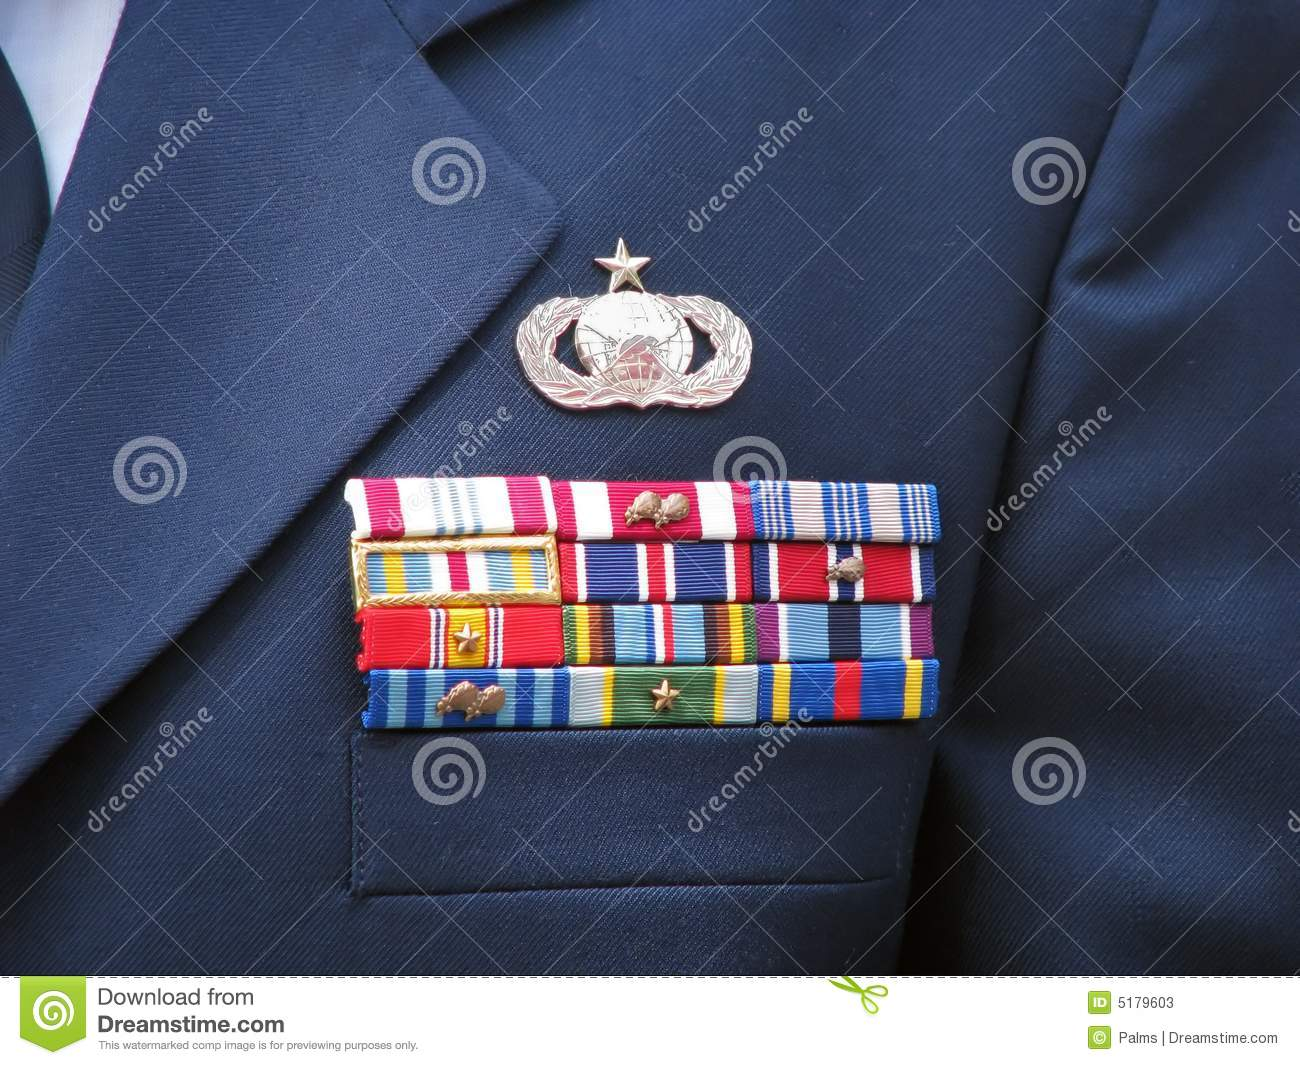 military decorations on uniform stock photos - Military Decorations